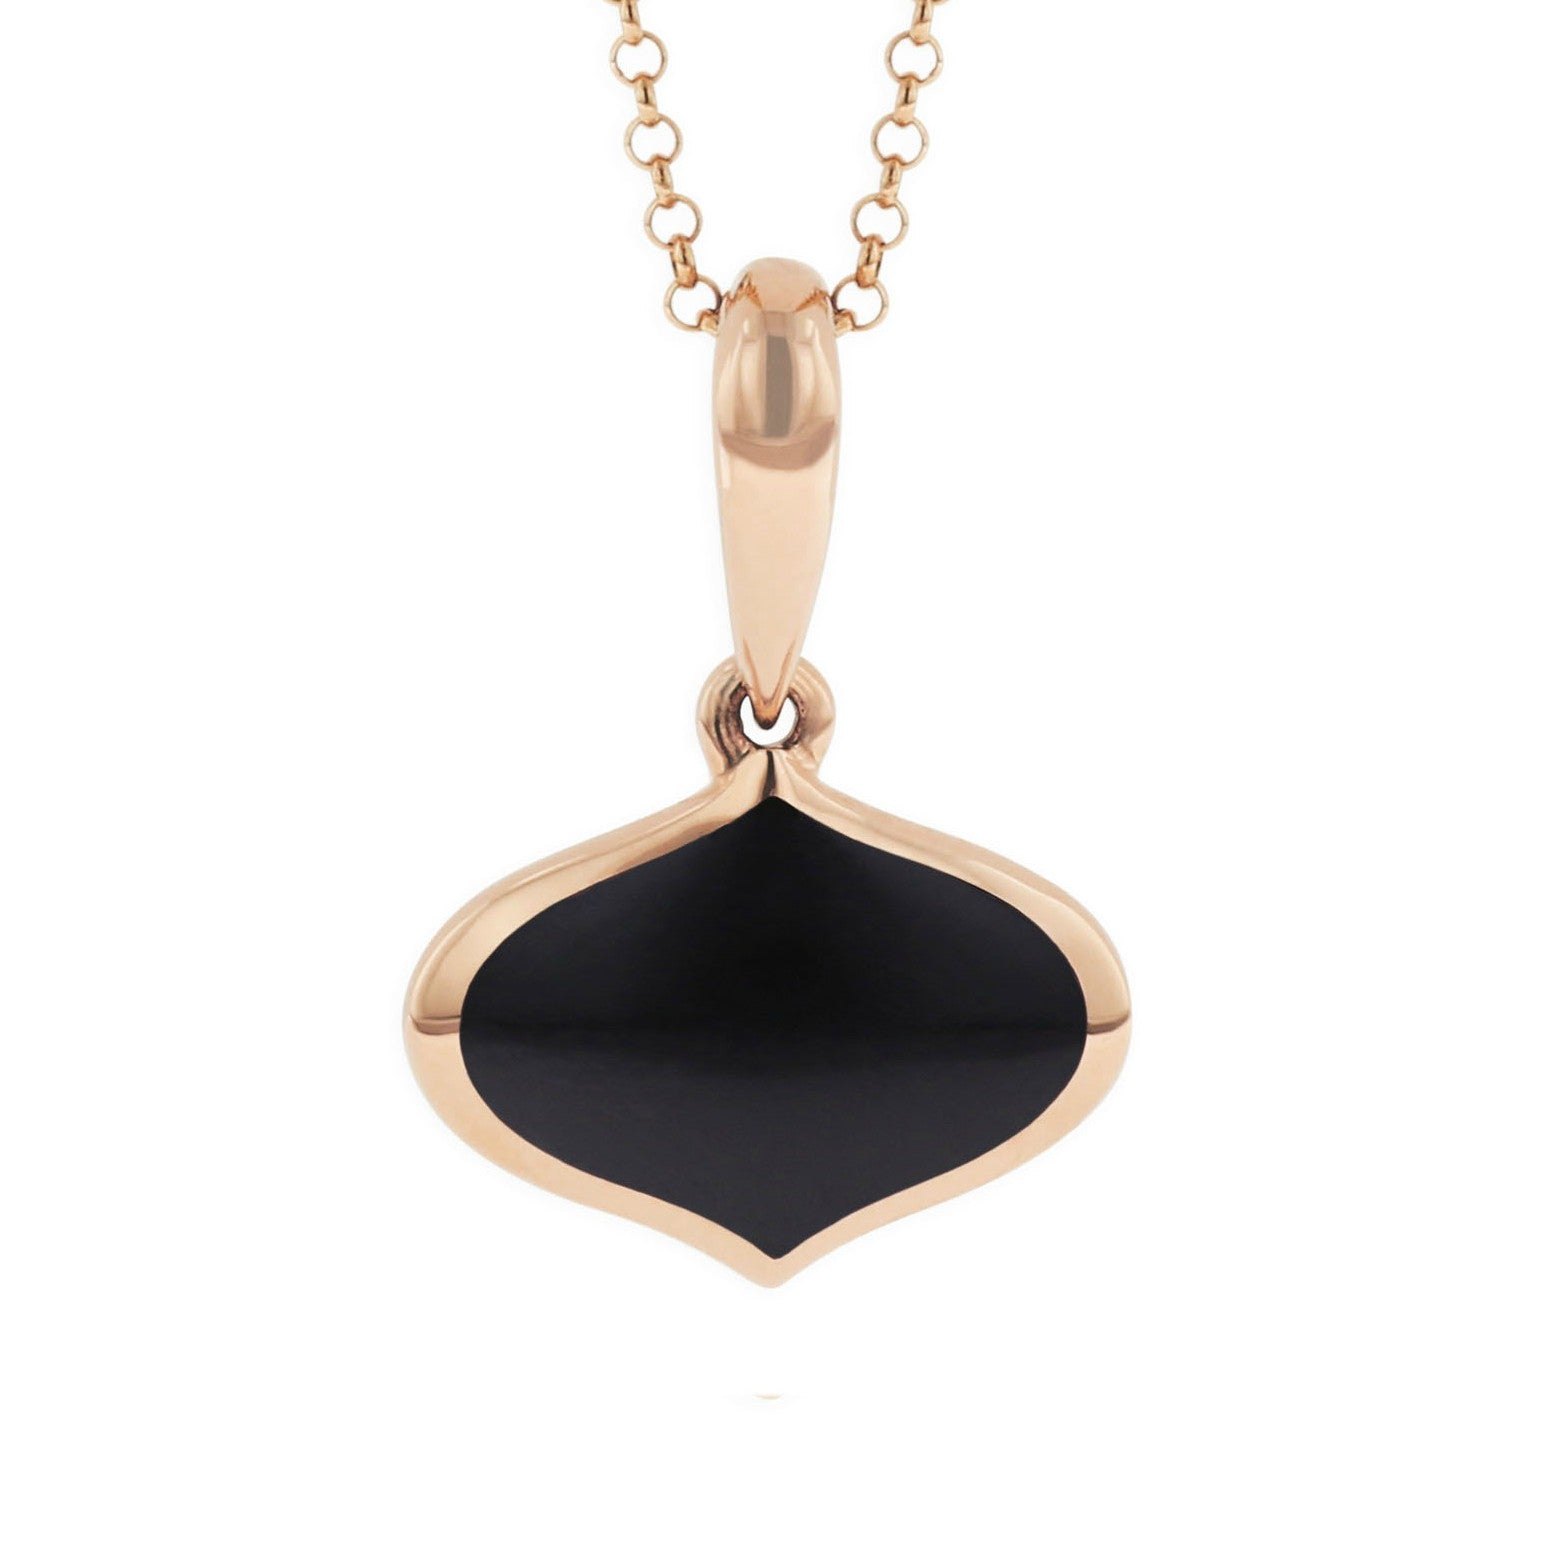 Kabana Onyx Pendant Necklace in Rose Gold